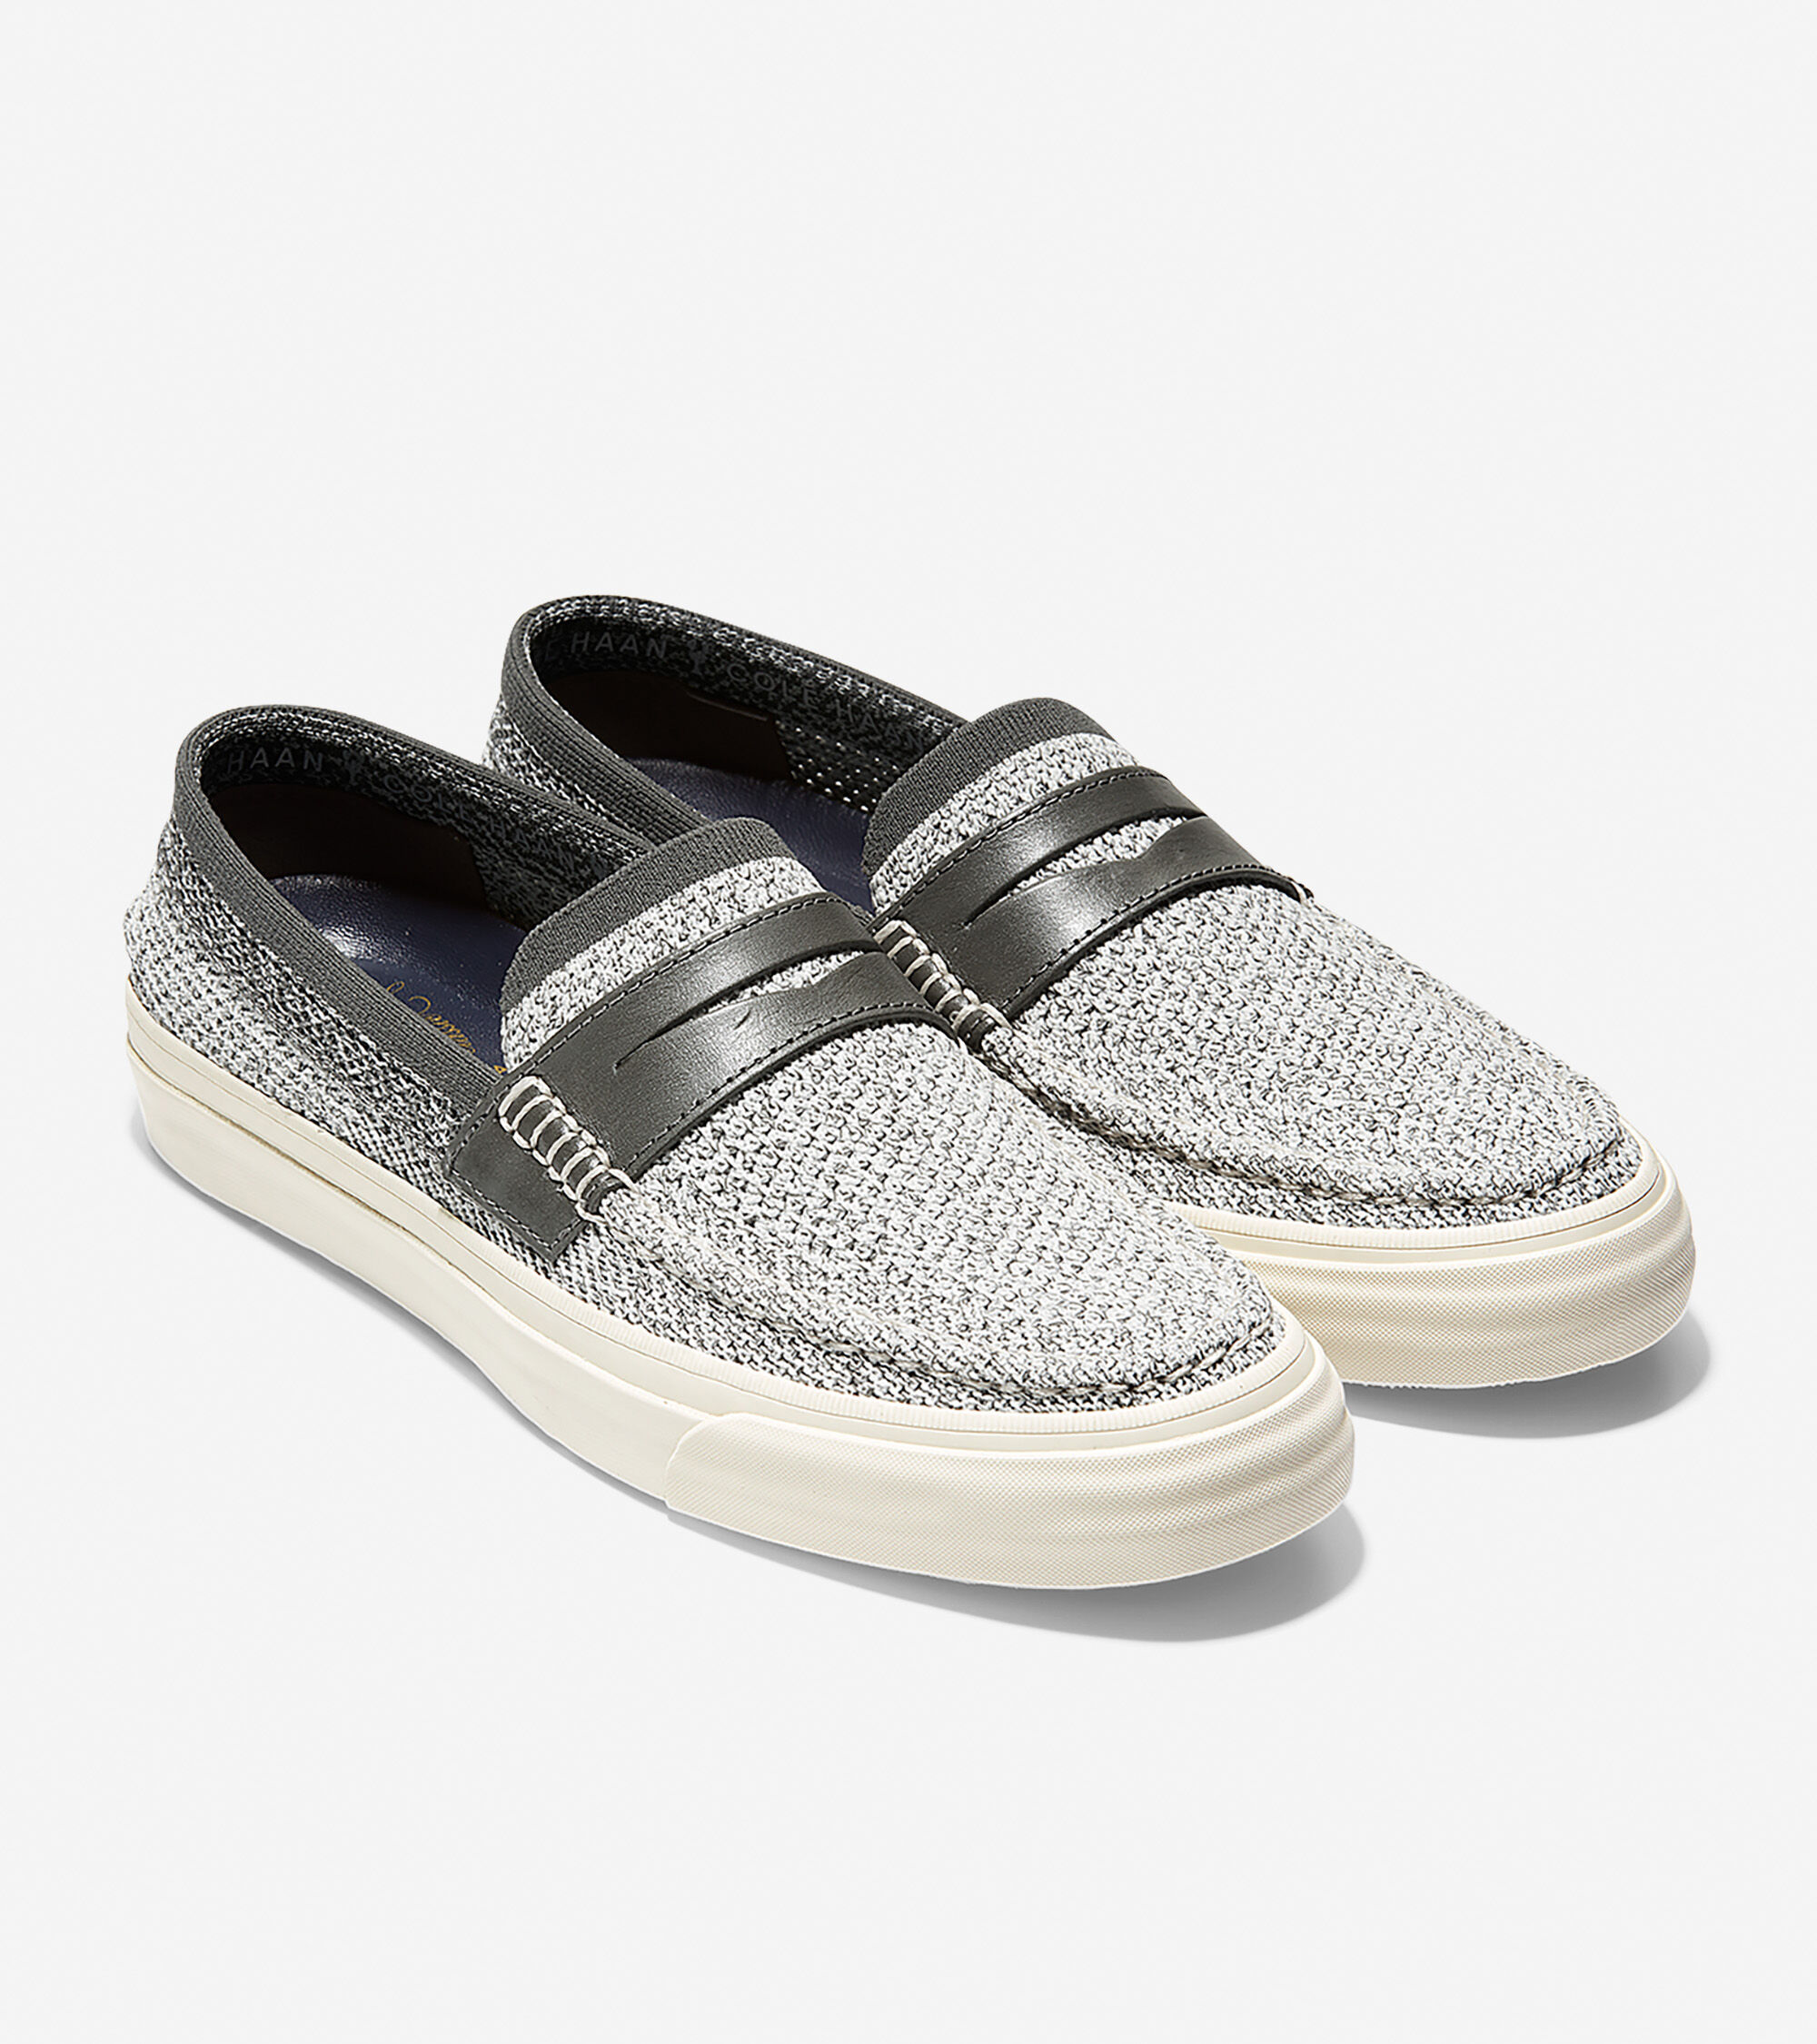 2c473f51536 Men s Pinch Weekender LX Loafers with Stitchlite in Lunar Rock ...